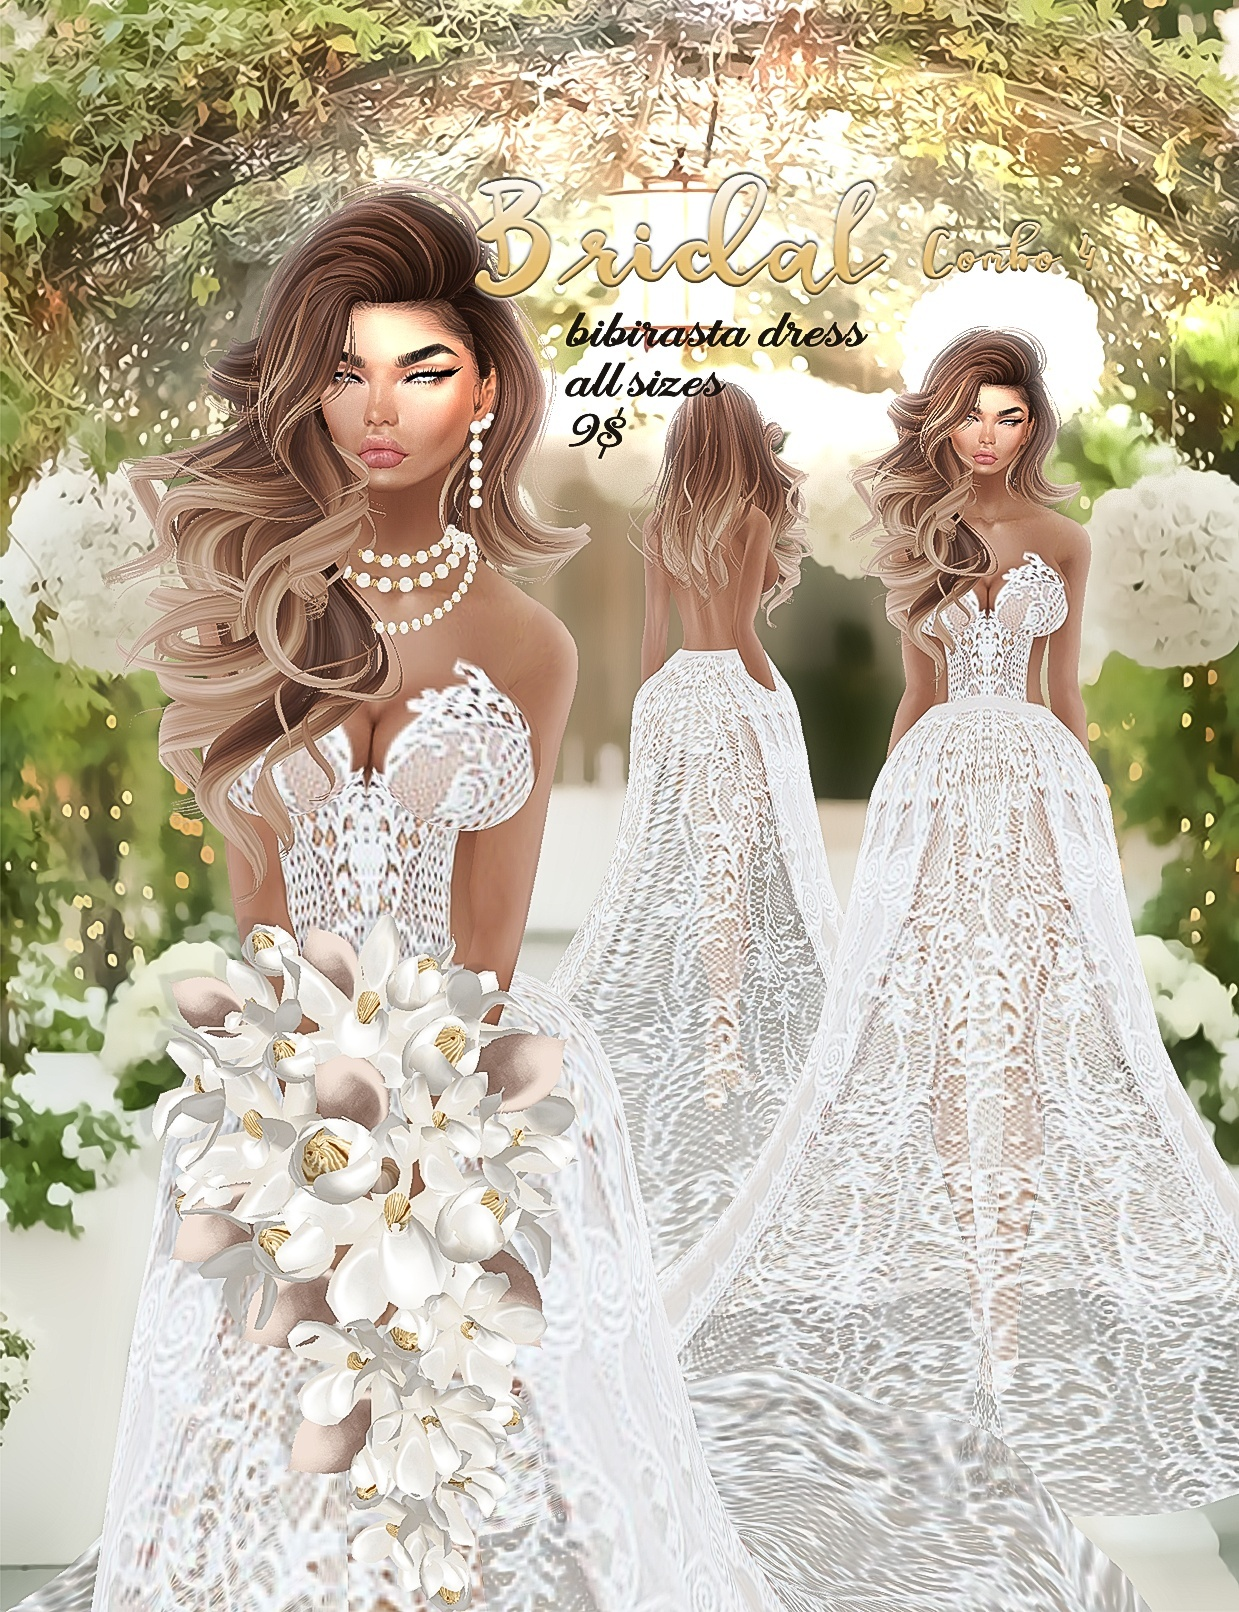 Bridal combo 4 •imvu Bibirasta dress all sizes